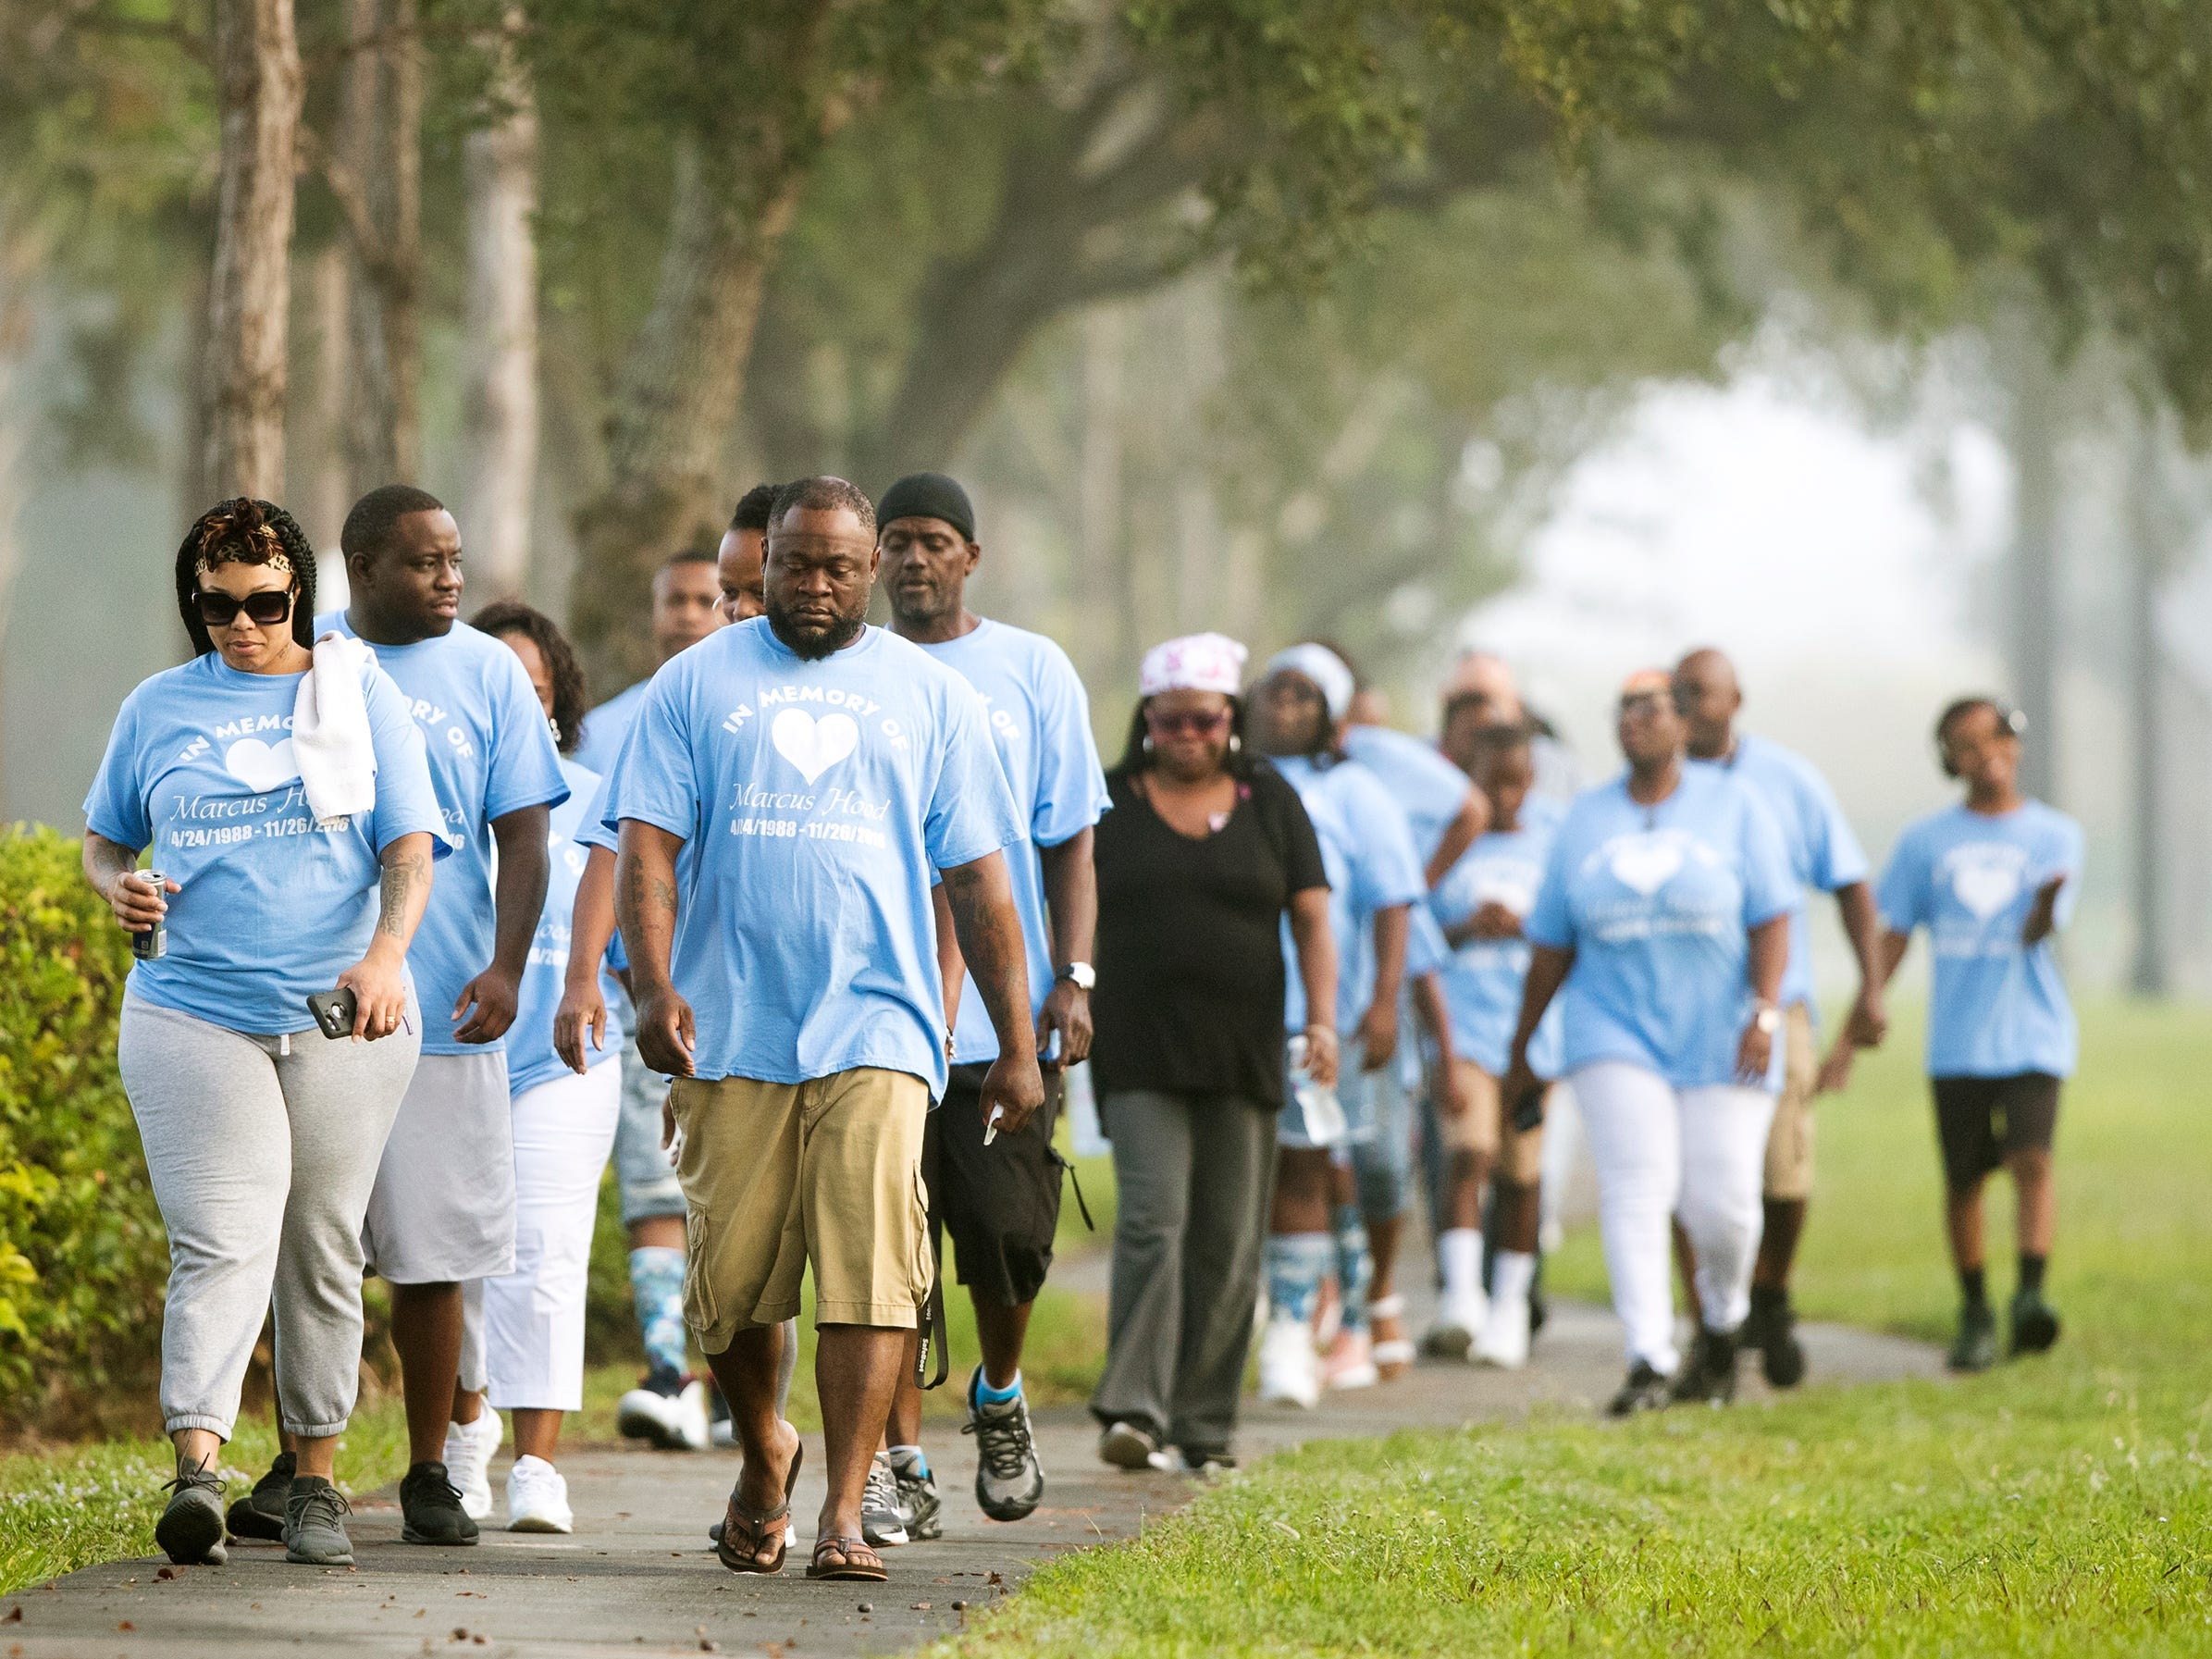 More than 35 family members and friends of Marcus Hood take part in a memorial walk in his honor recently in San Carlos Park. Hood was killed two years ago in a shooting at the Gulf Coast Town Center. The four-mile walk began at the center and ended at Cypress View Drive where emergency personnel found Hood.